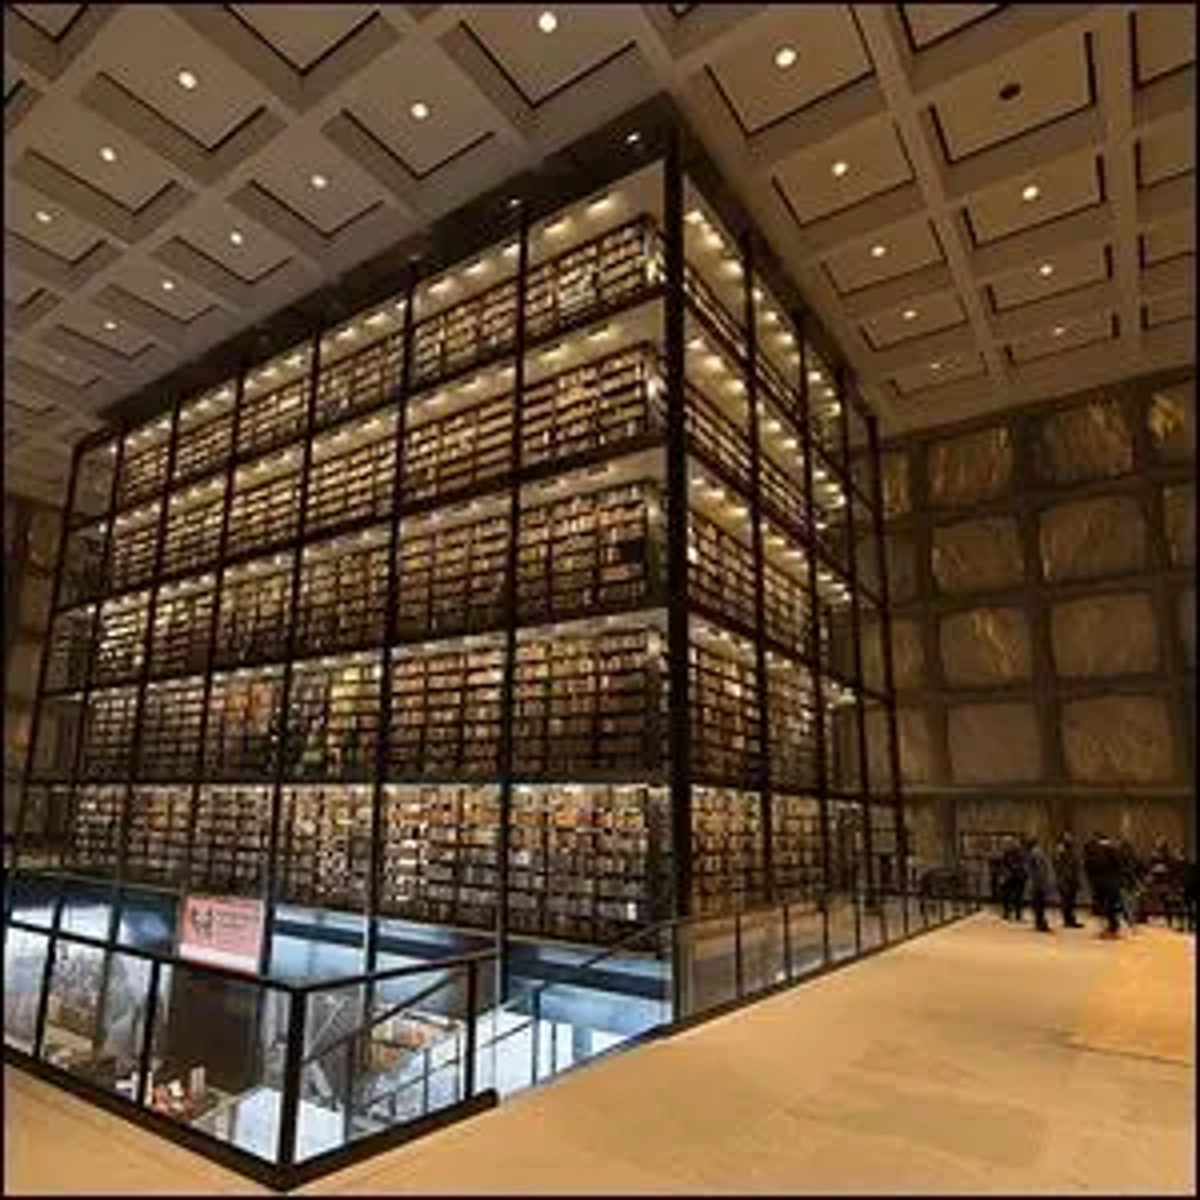 An interior view of Yale's Beinecke Rare Book Library.